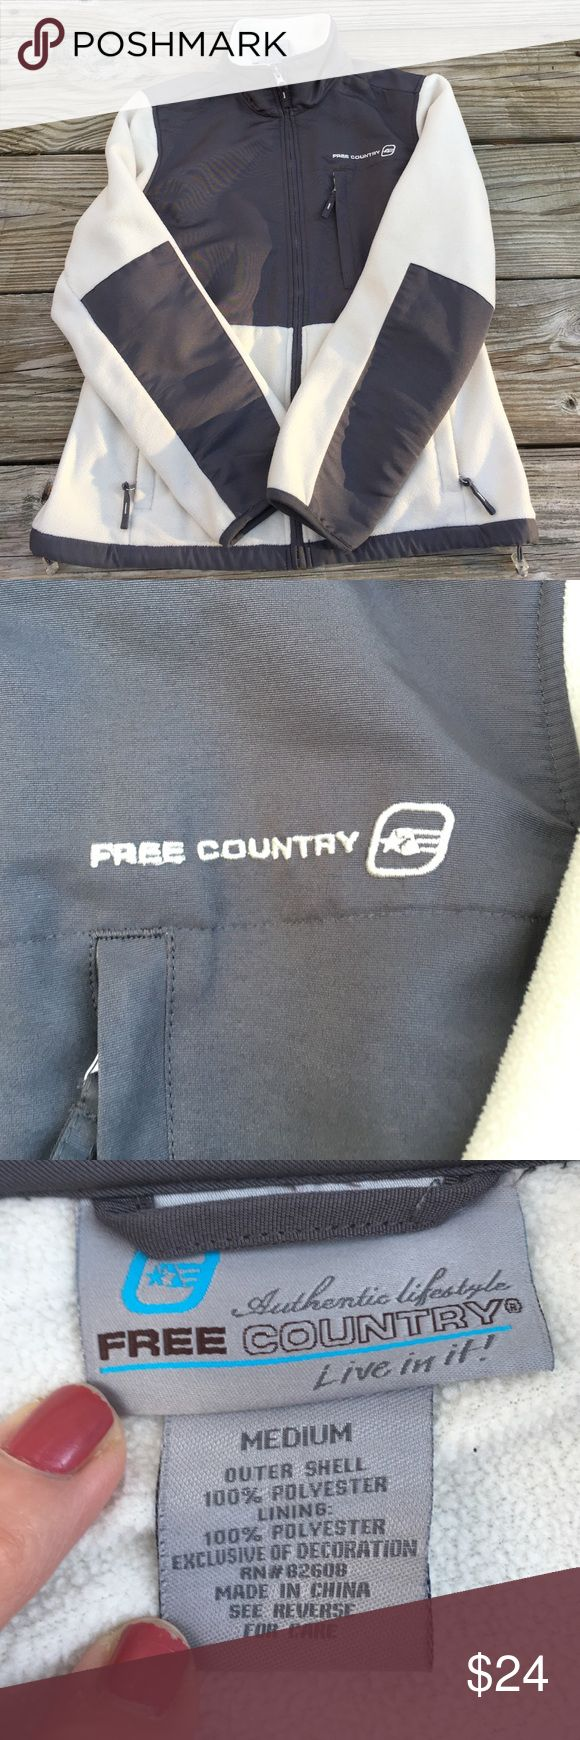 Women's free Country Fleece Jacket Medium Women's Free Country Fleece zip up Jacket it's a off white cream color and gray. Size Medium In nice shape smoke free home please see all pictures. Free Country  Jackets & Coats